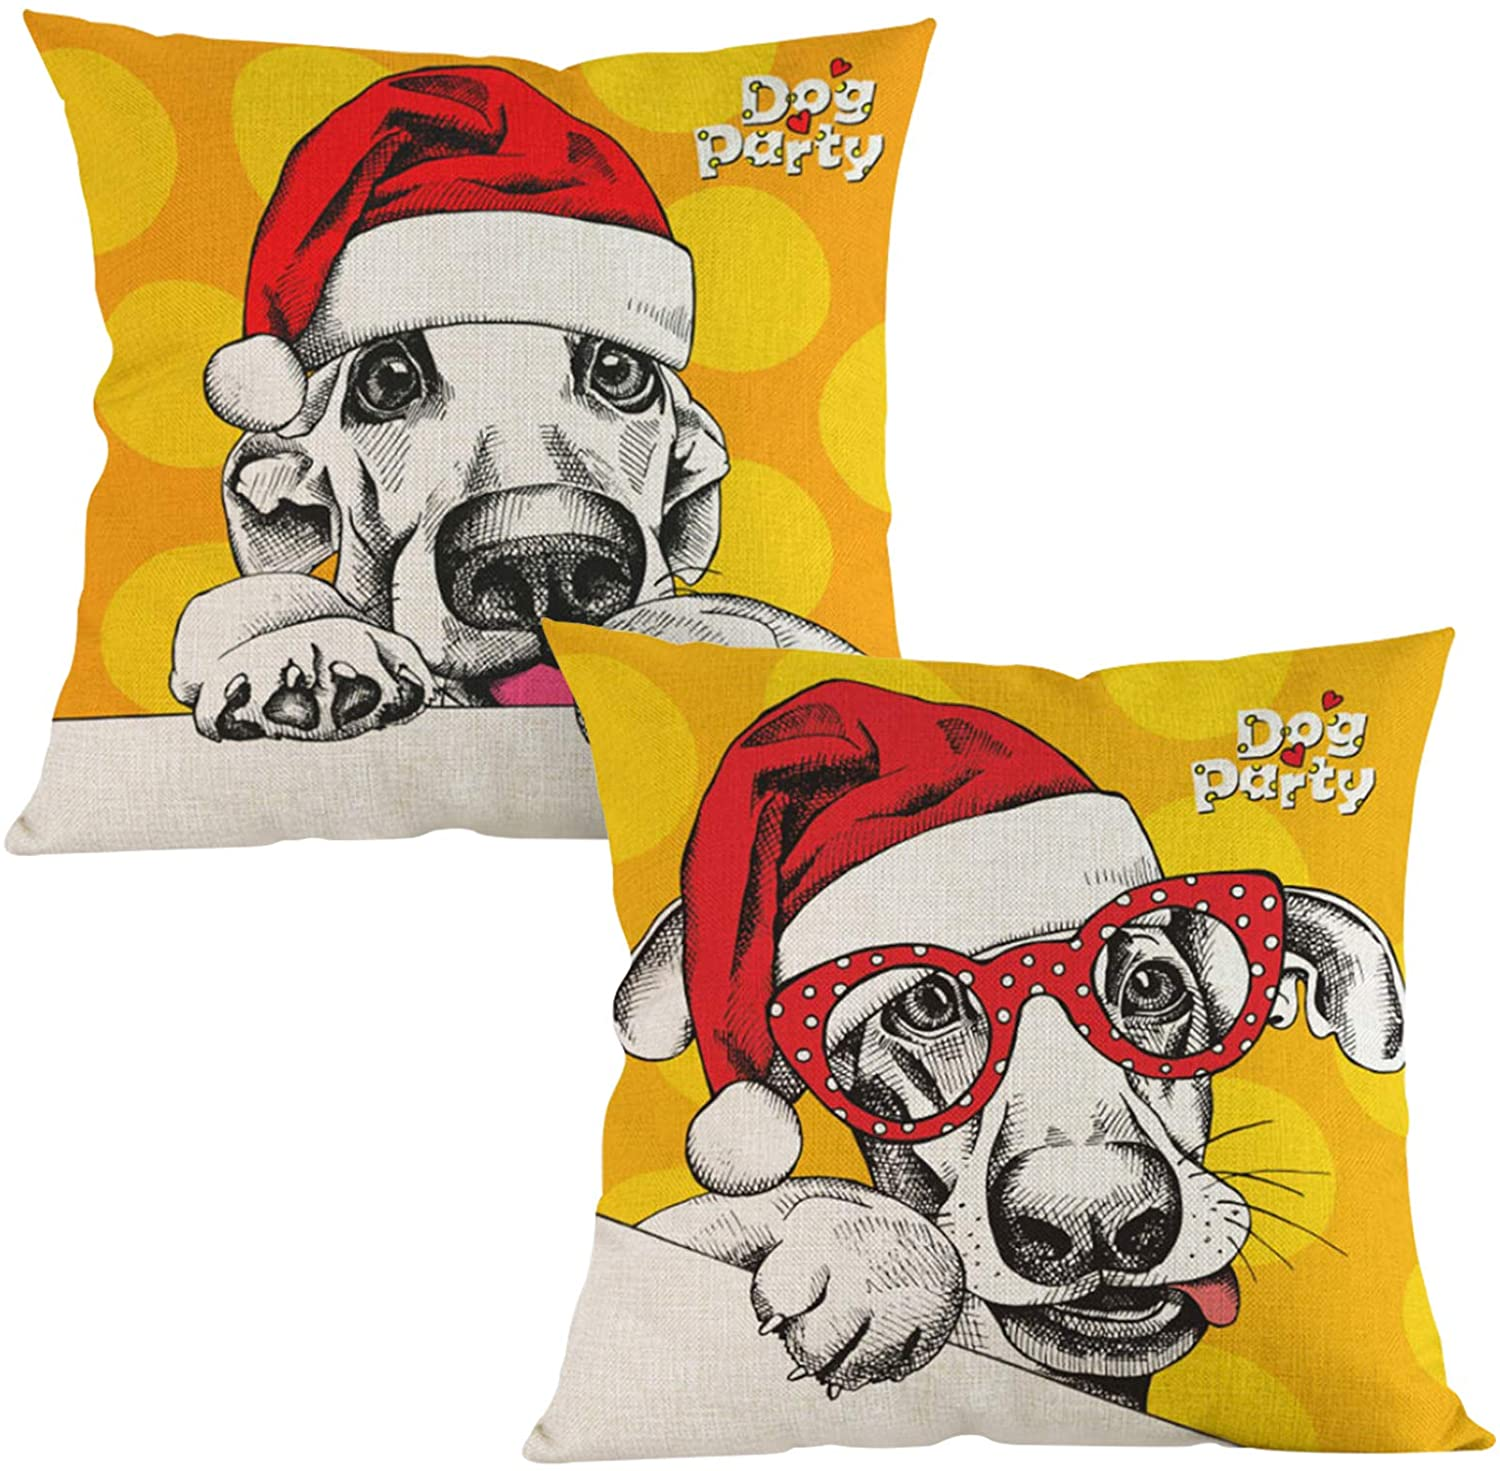 FYY Christmas Decorative Square Throw Pillow Covers, Set of 2 Cozy Zippered Cushion Cases Christmas Series Pillowcase for Couch, Bed, Car&Home Decor 18 x 18 Inch